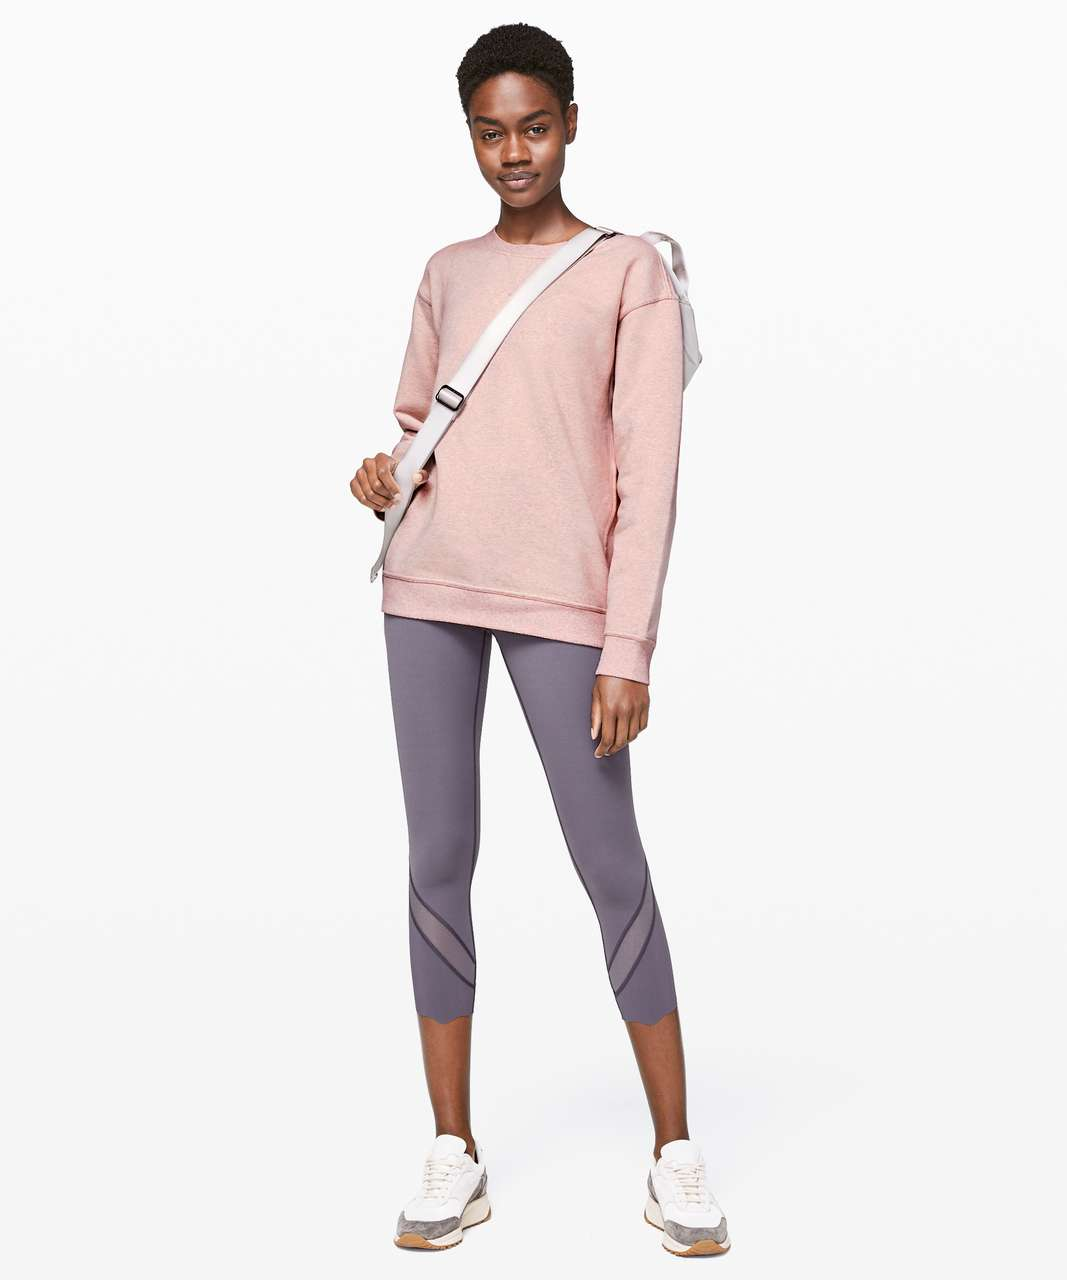 Lululemon All Yours Crew - Heathered Mink Berry / Mink Berry